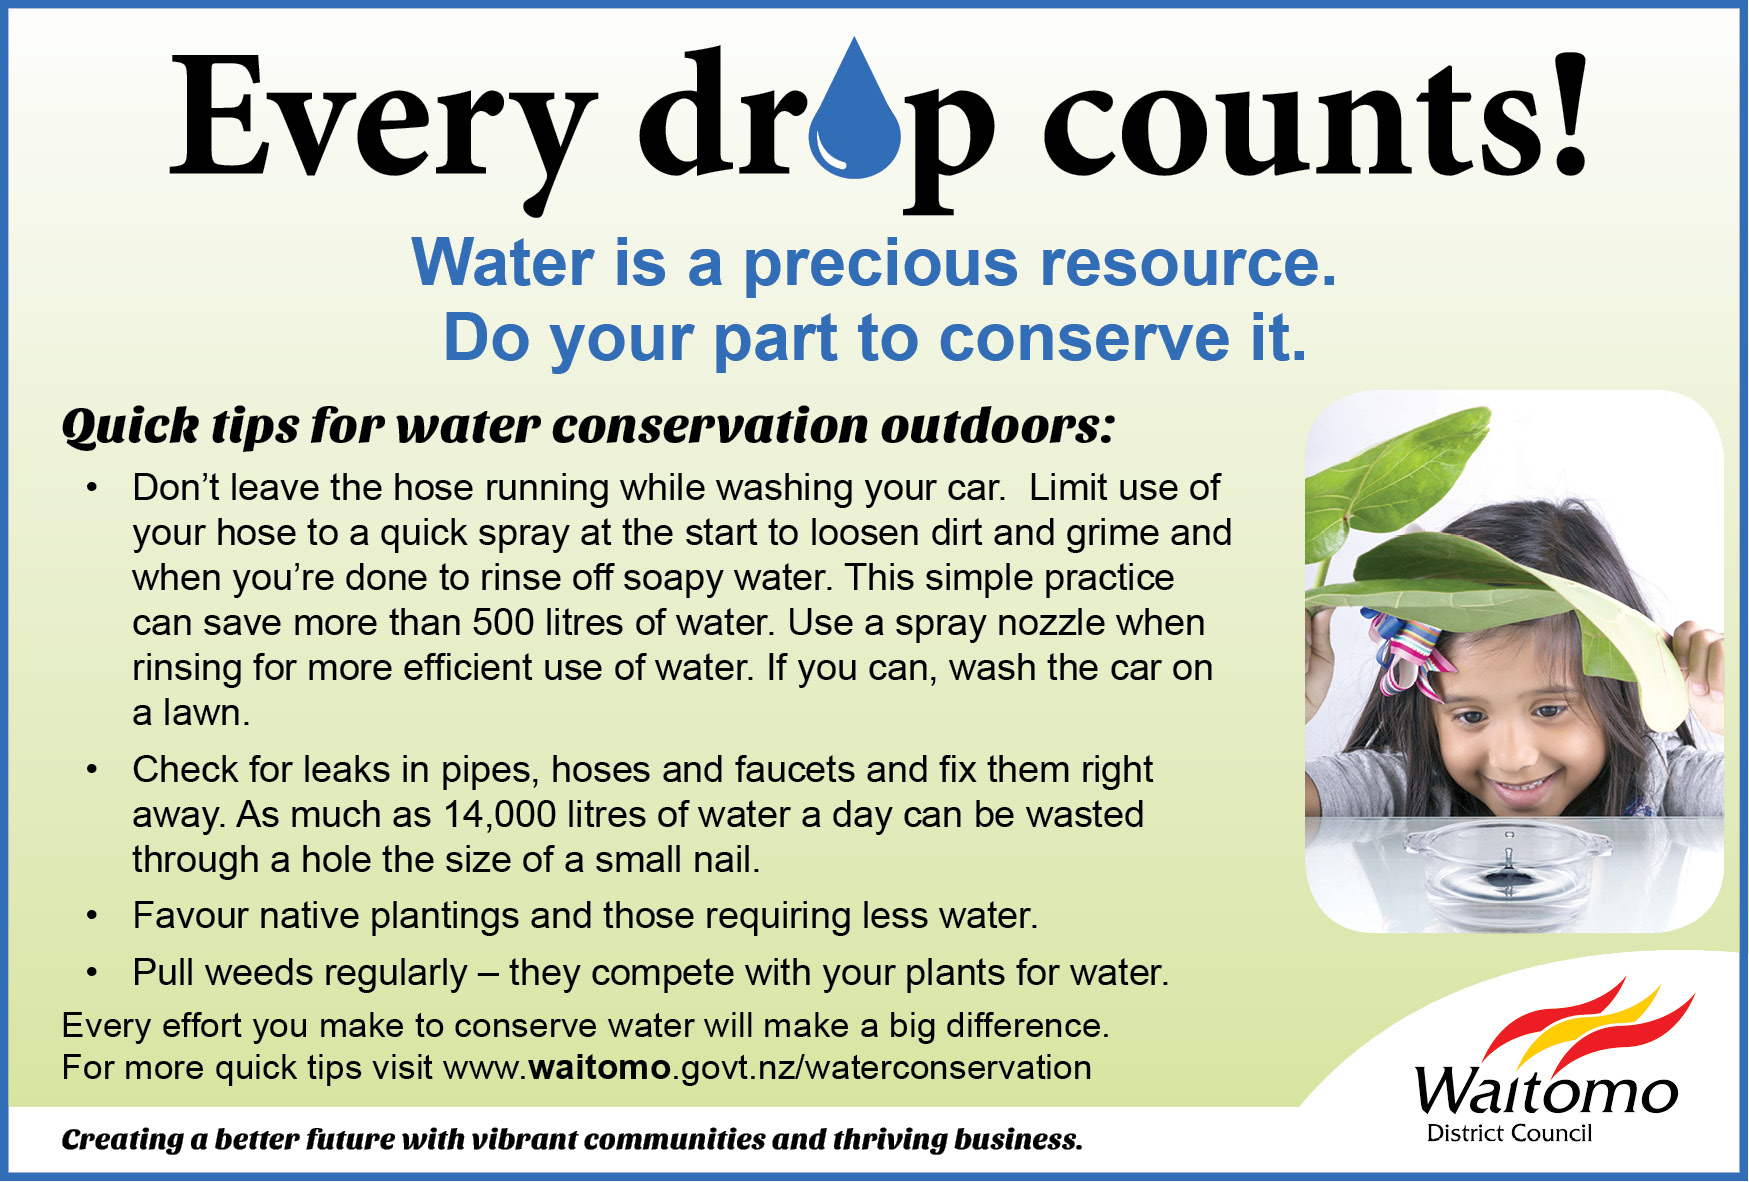 Every drop counts! Quick tips for water conservation outdoors